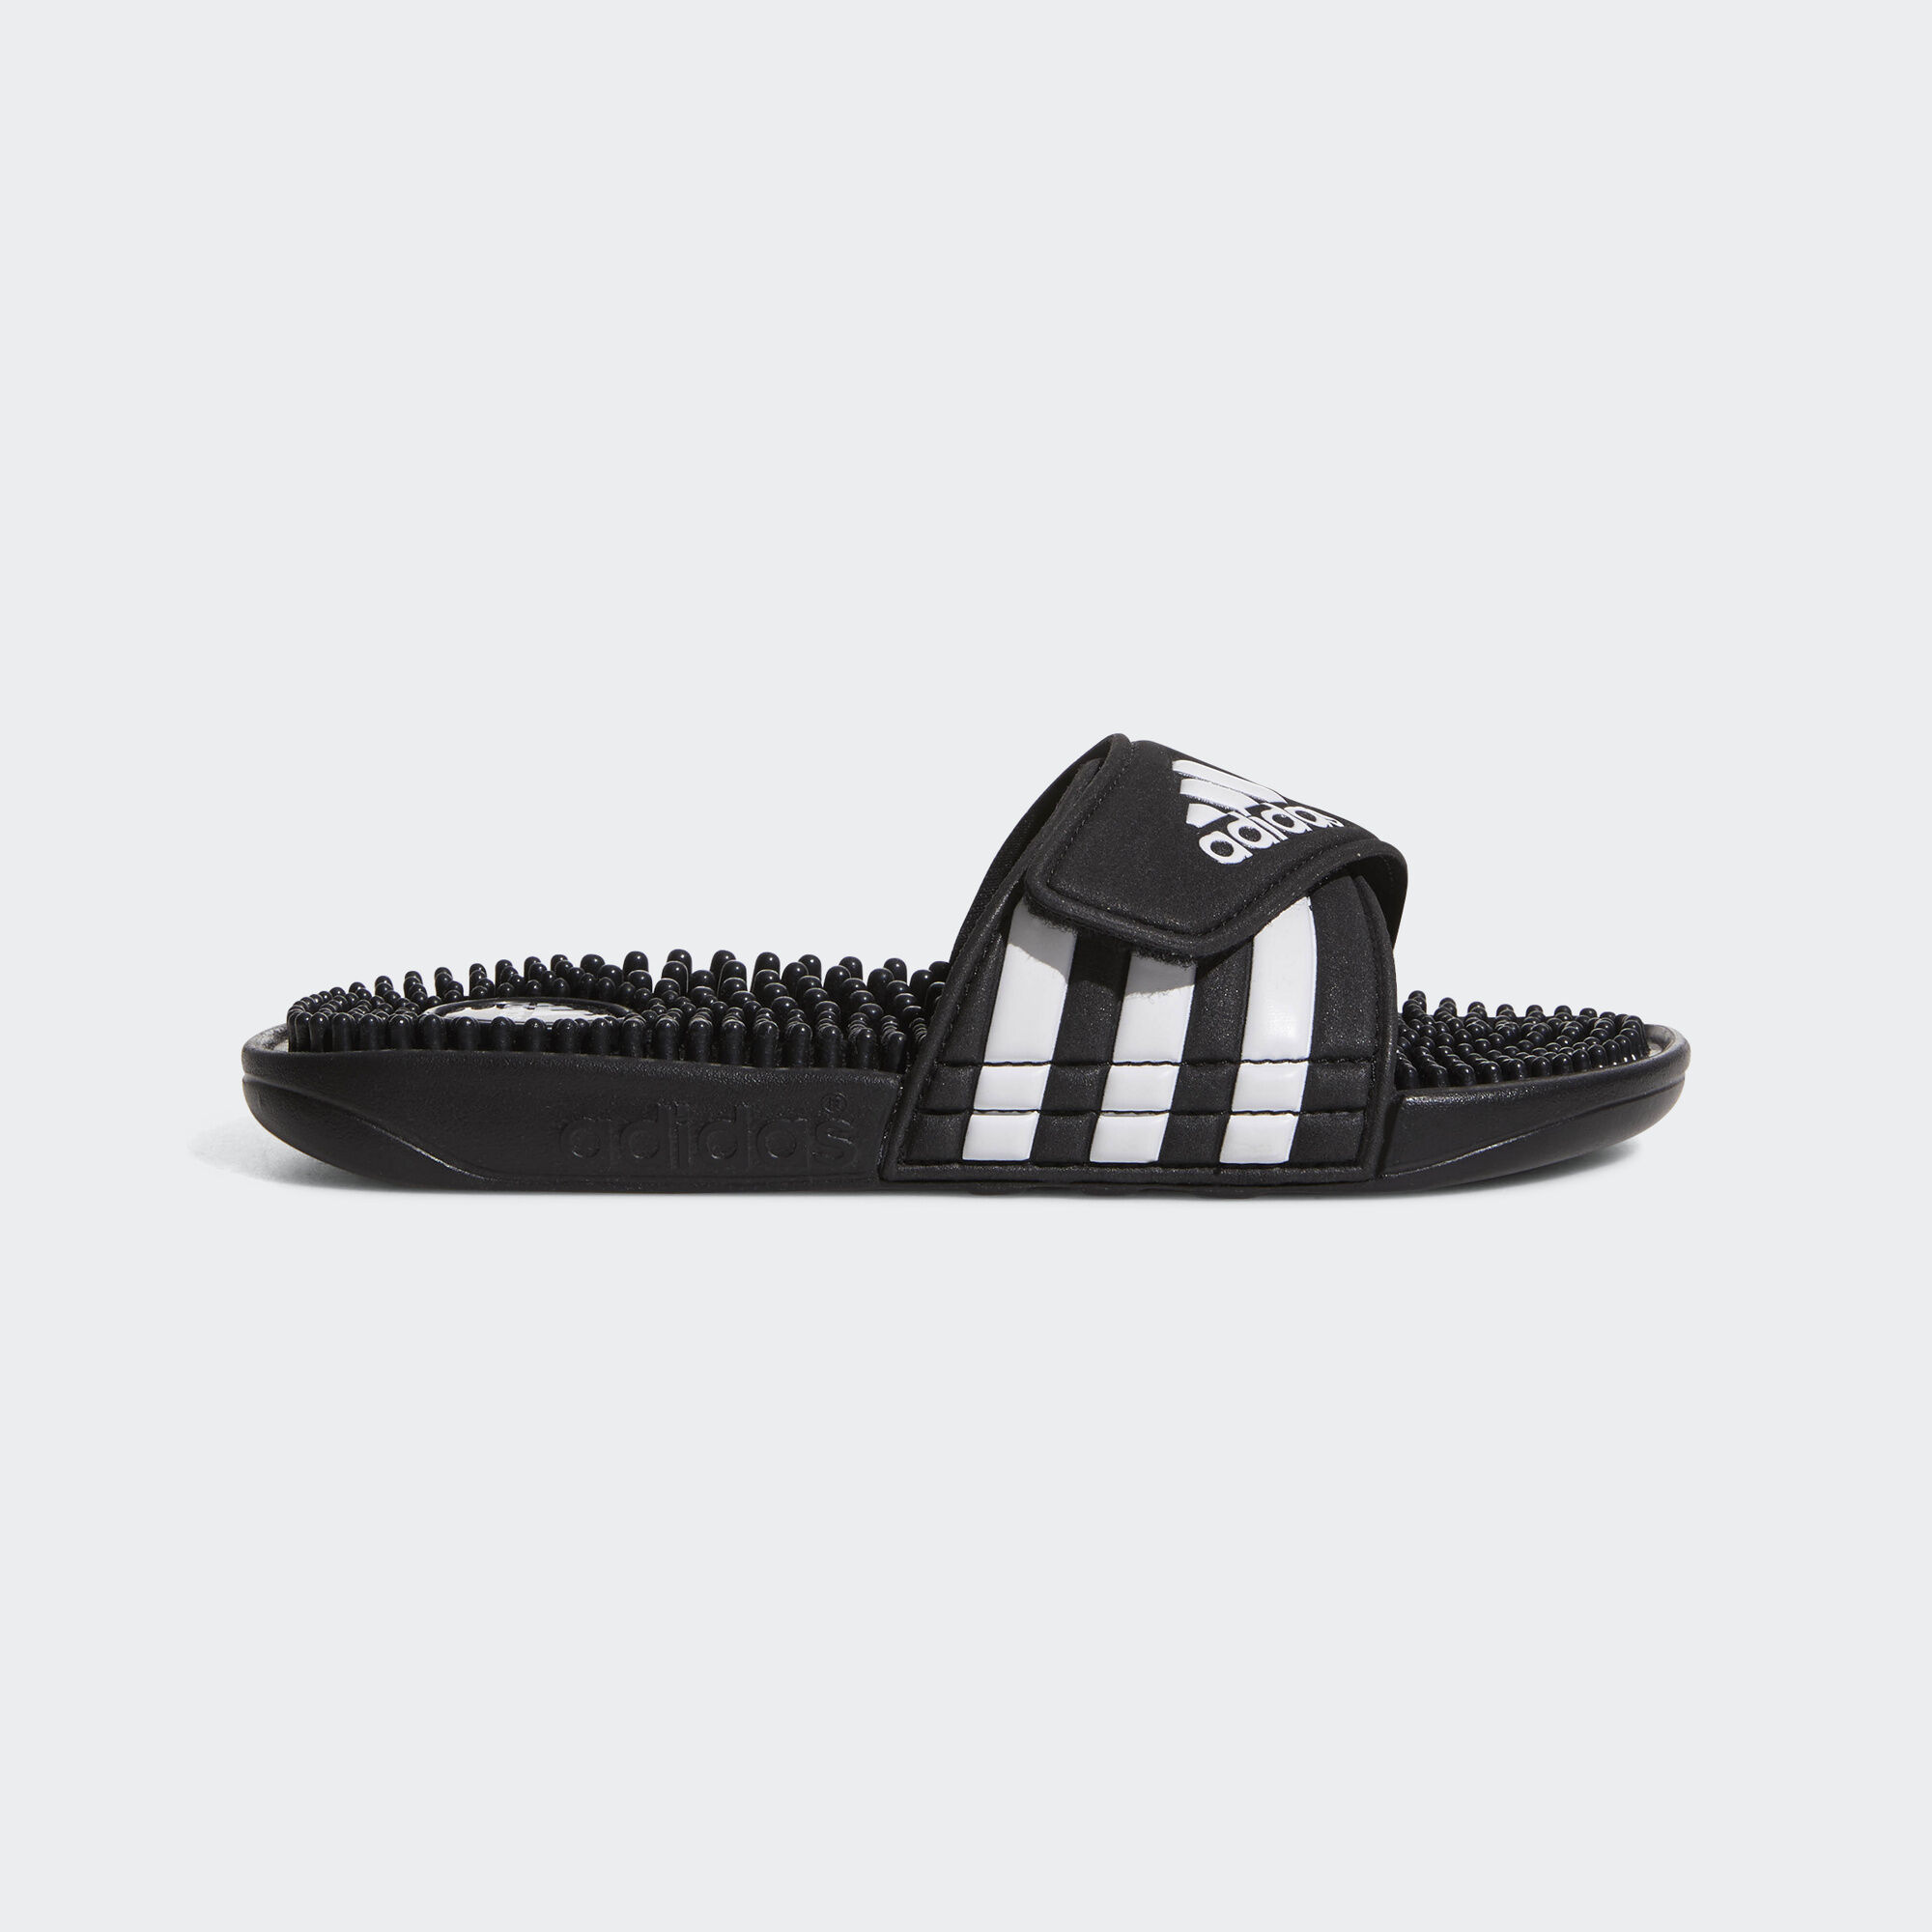 7a33536cc663 Buy adidas velcro flip flops   OFF72% Discounted